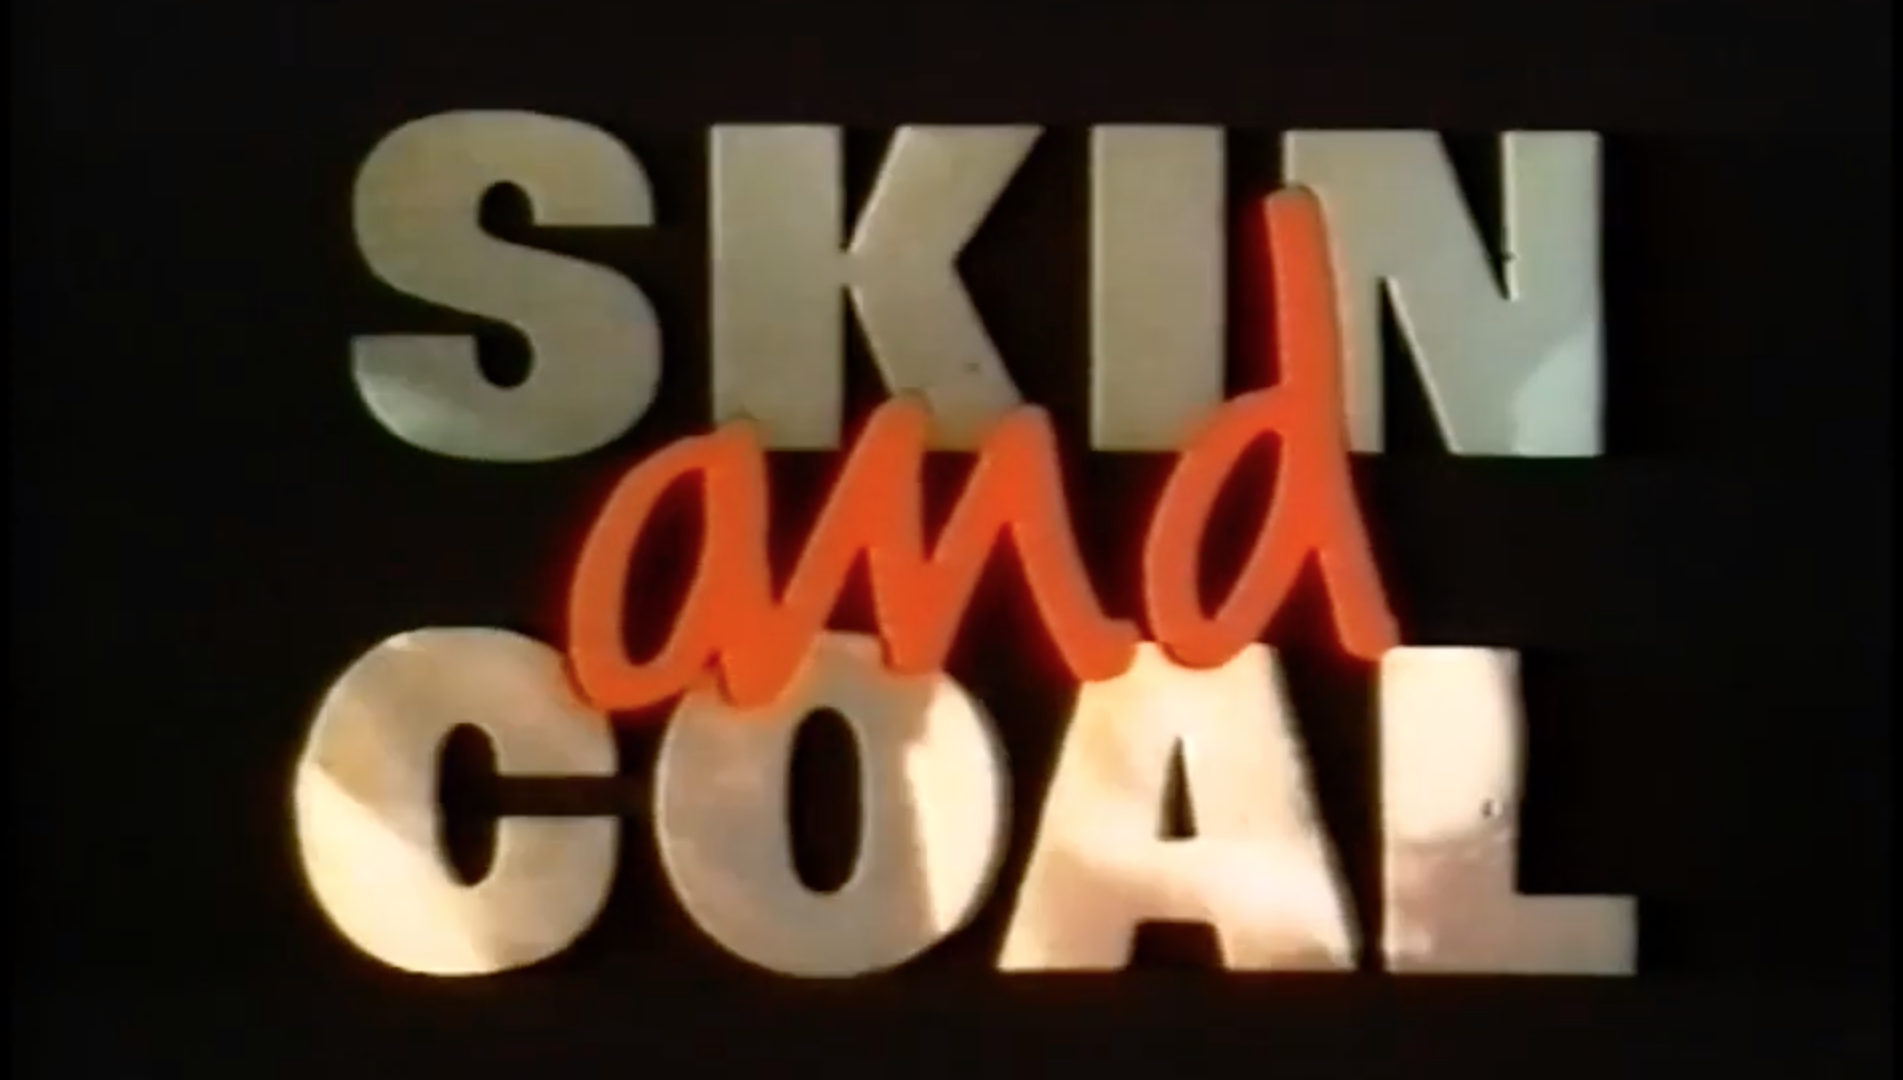 'Skin and Coal' Film Screening and Q&A